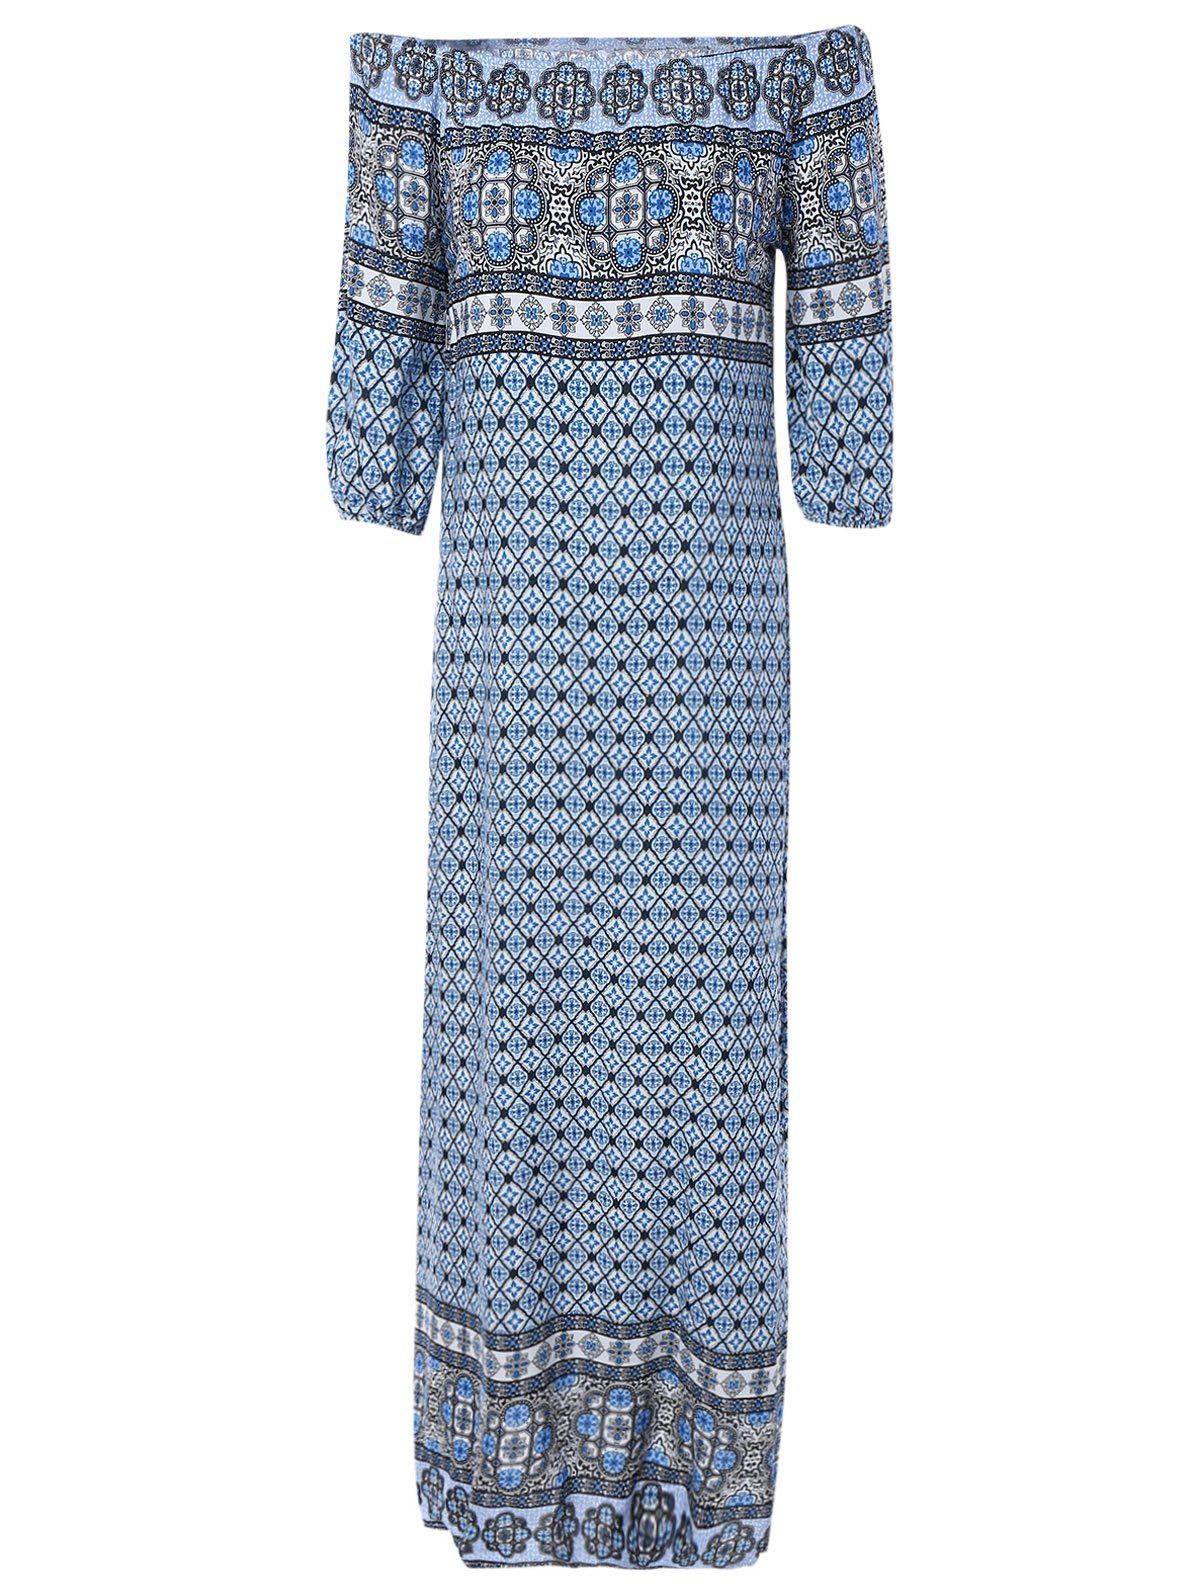 Off The Shoulder Ethnic Print Dress - COLORMIX ONE SIZE(FIT SIZE XS TO M)